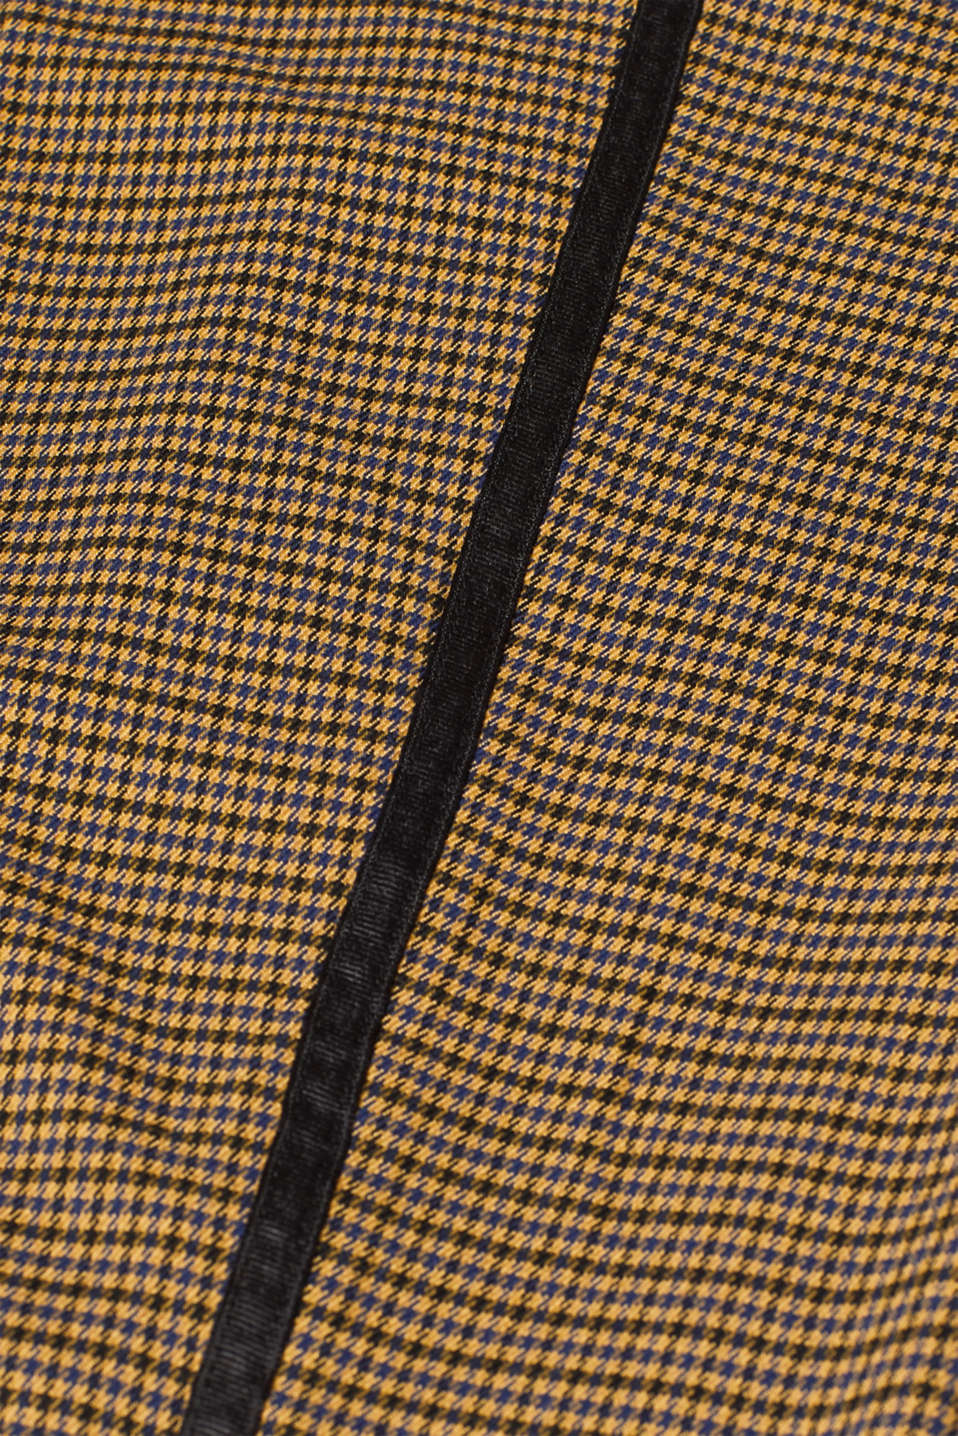 Stretch trousers with a houndstooth pattern and racing stripes, BARK, detail image number 4